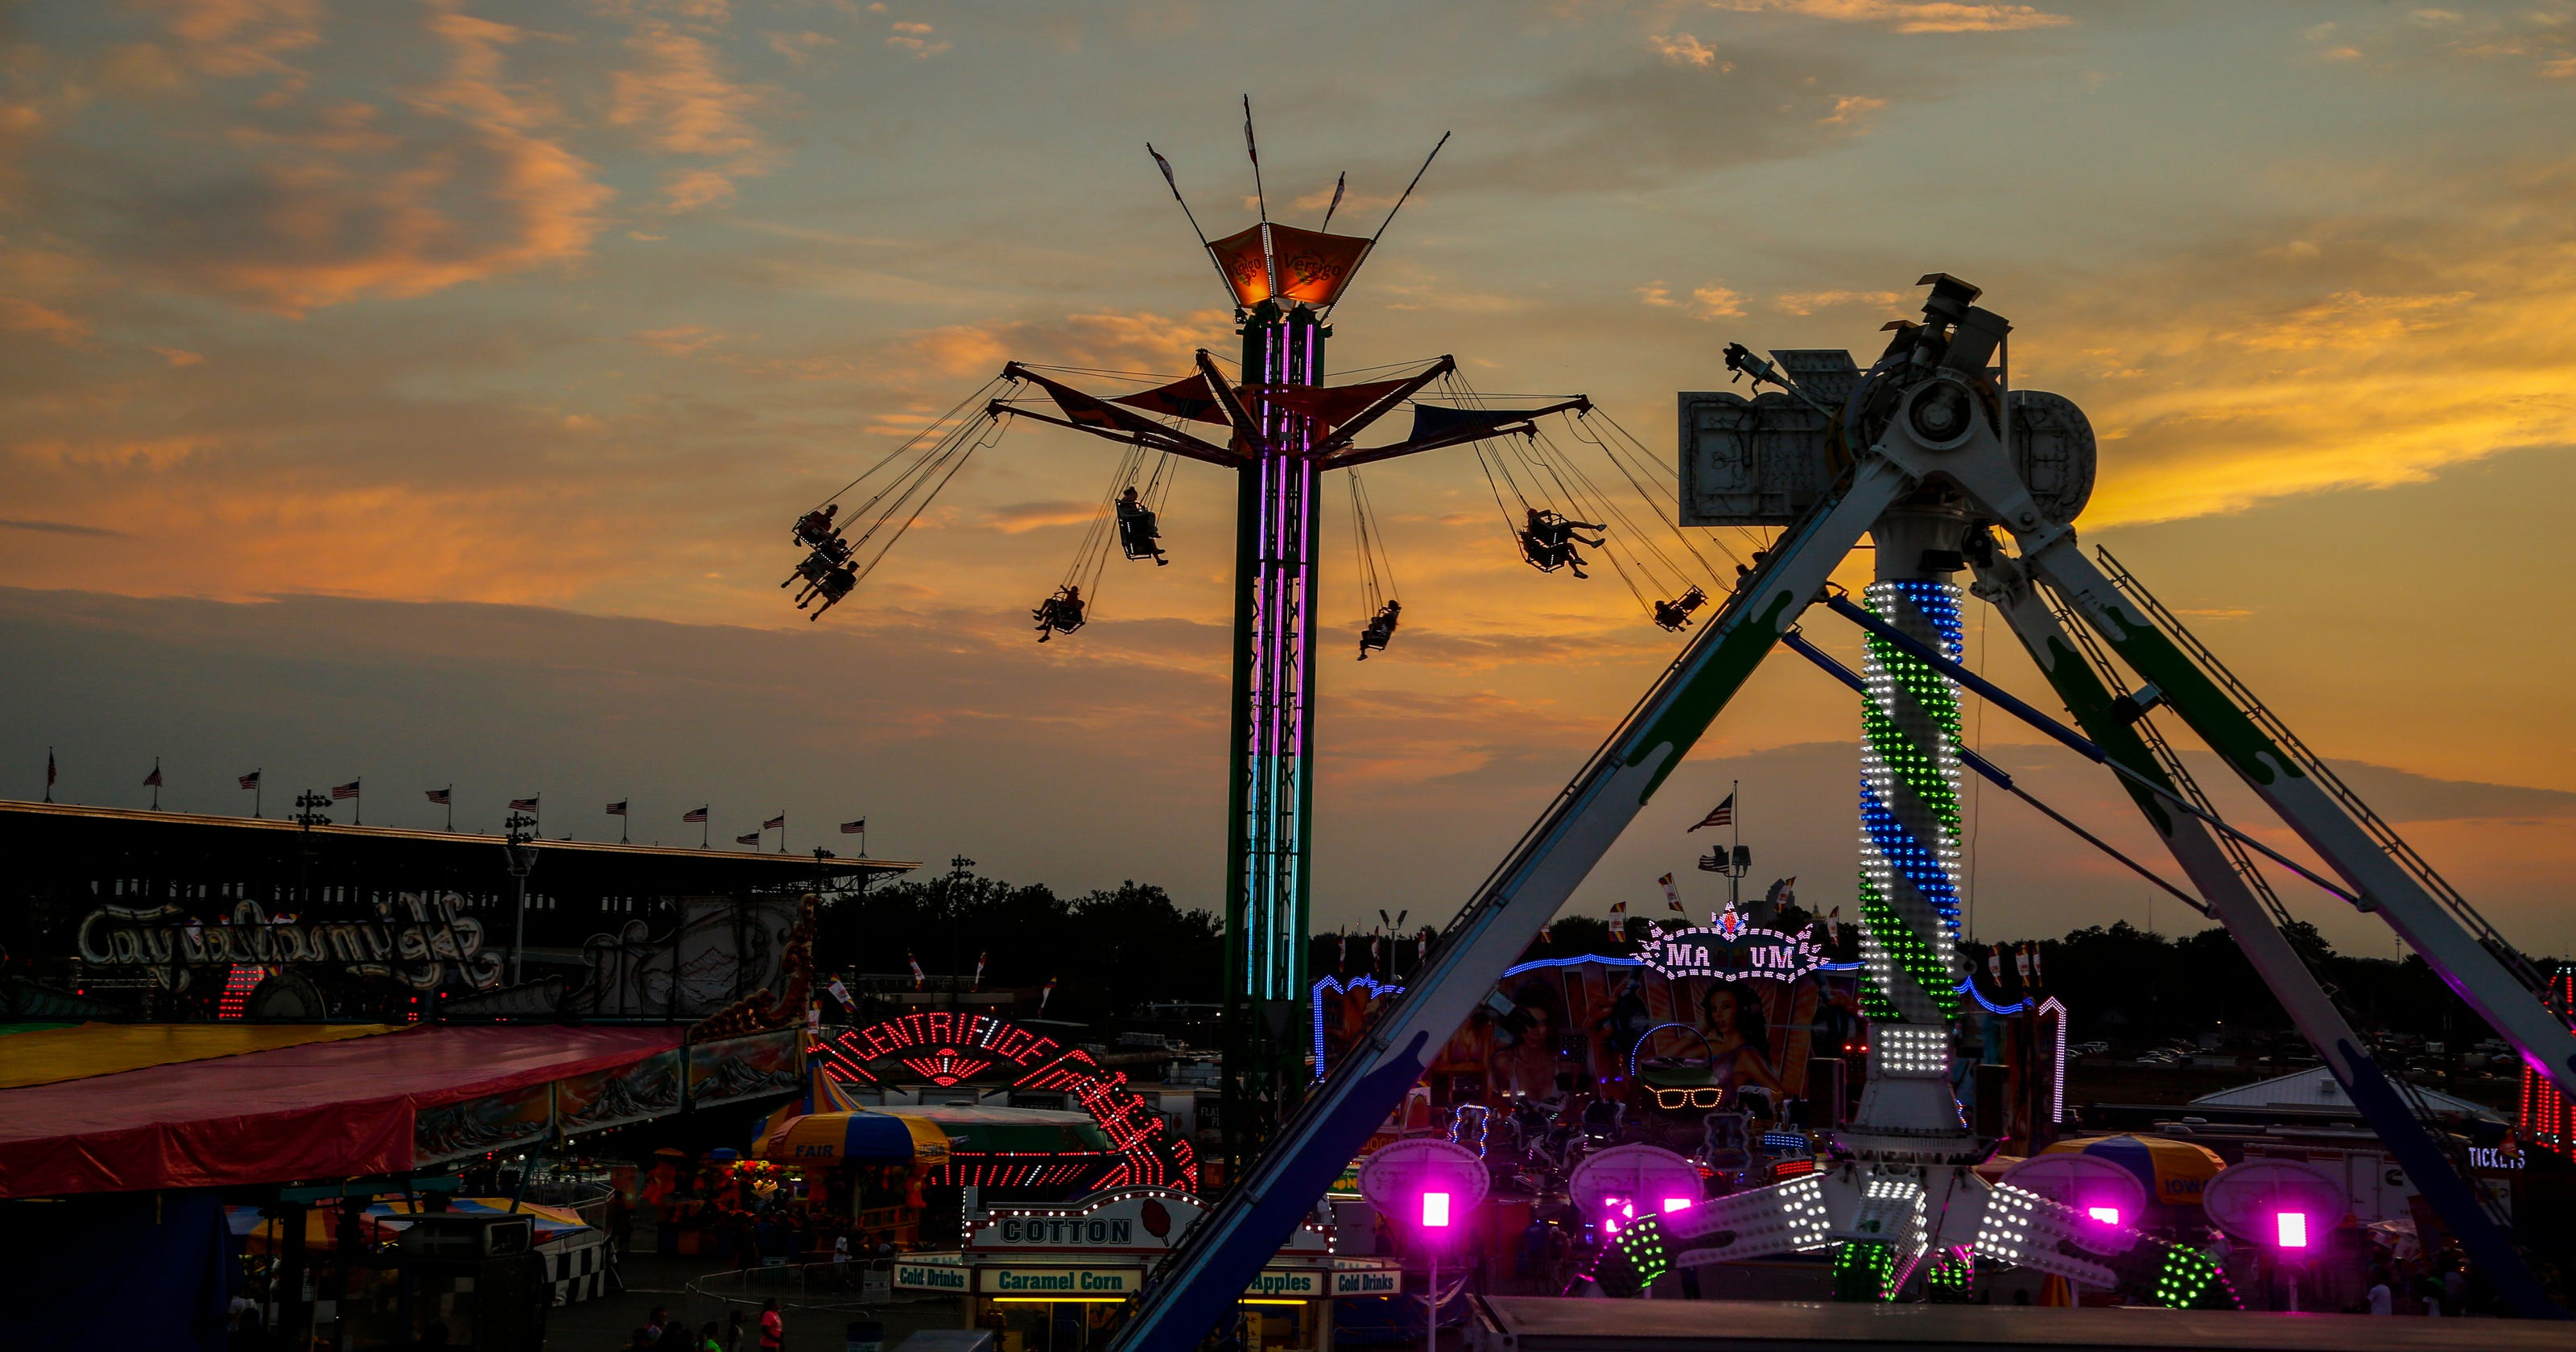 Iowa State Fair: How to save time, money and your sanity